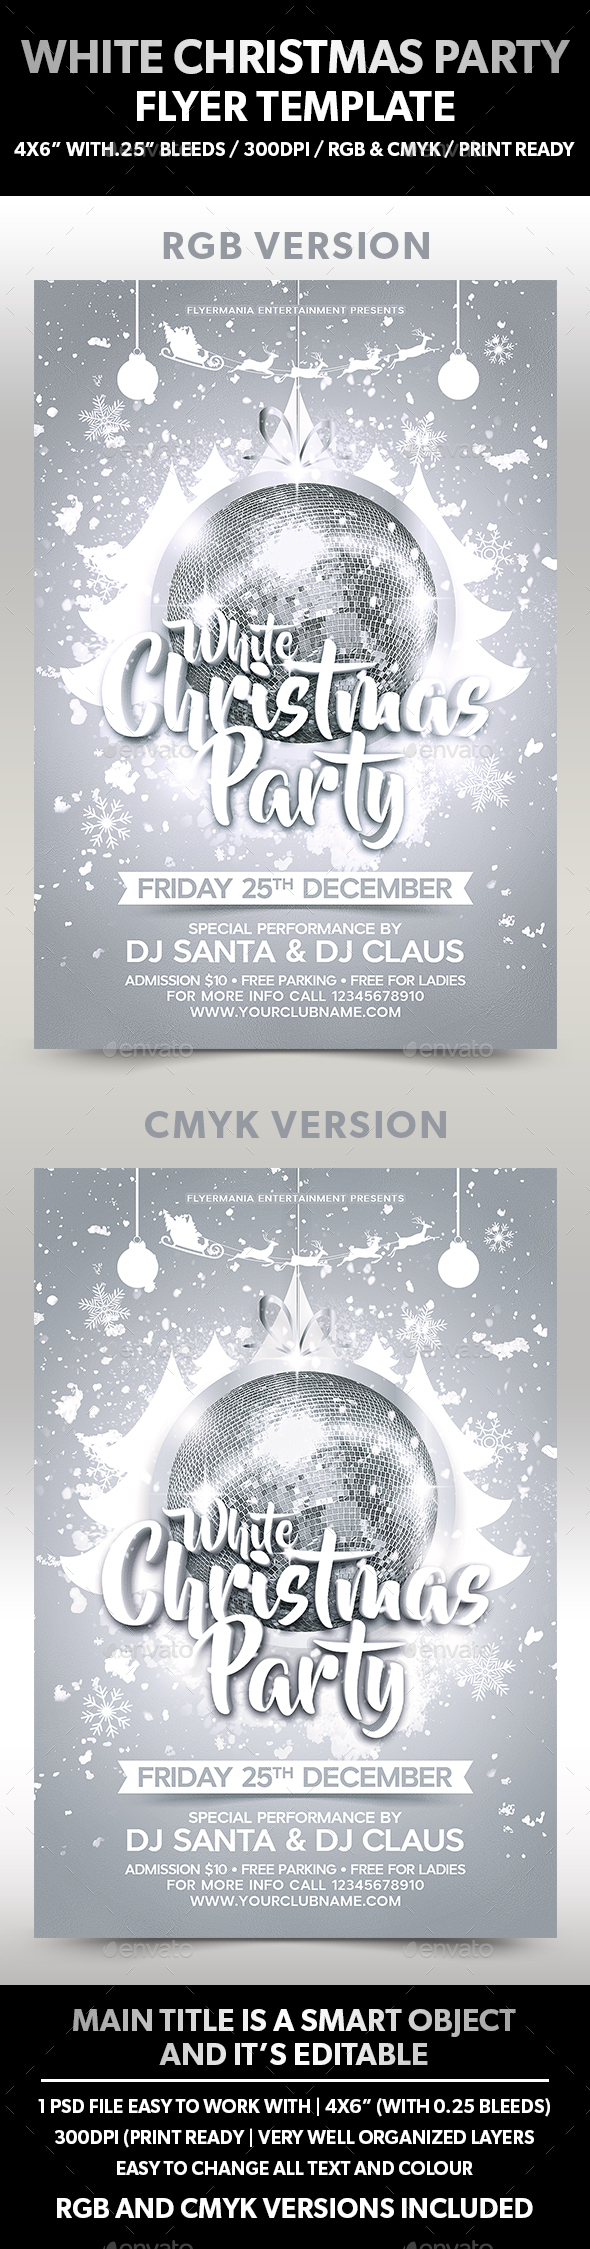 White Christmas Party Flyer Template - Flyers Print Templates